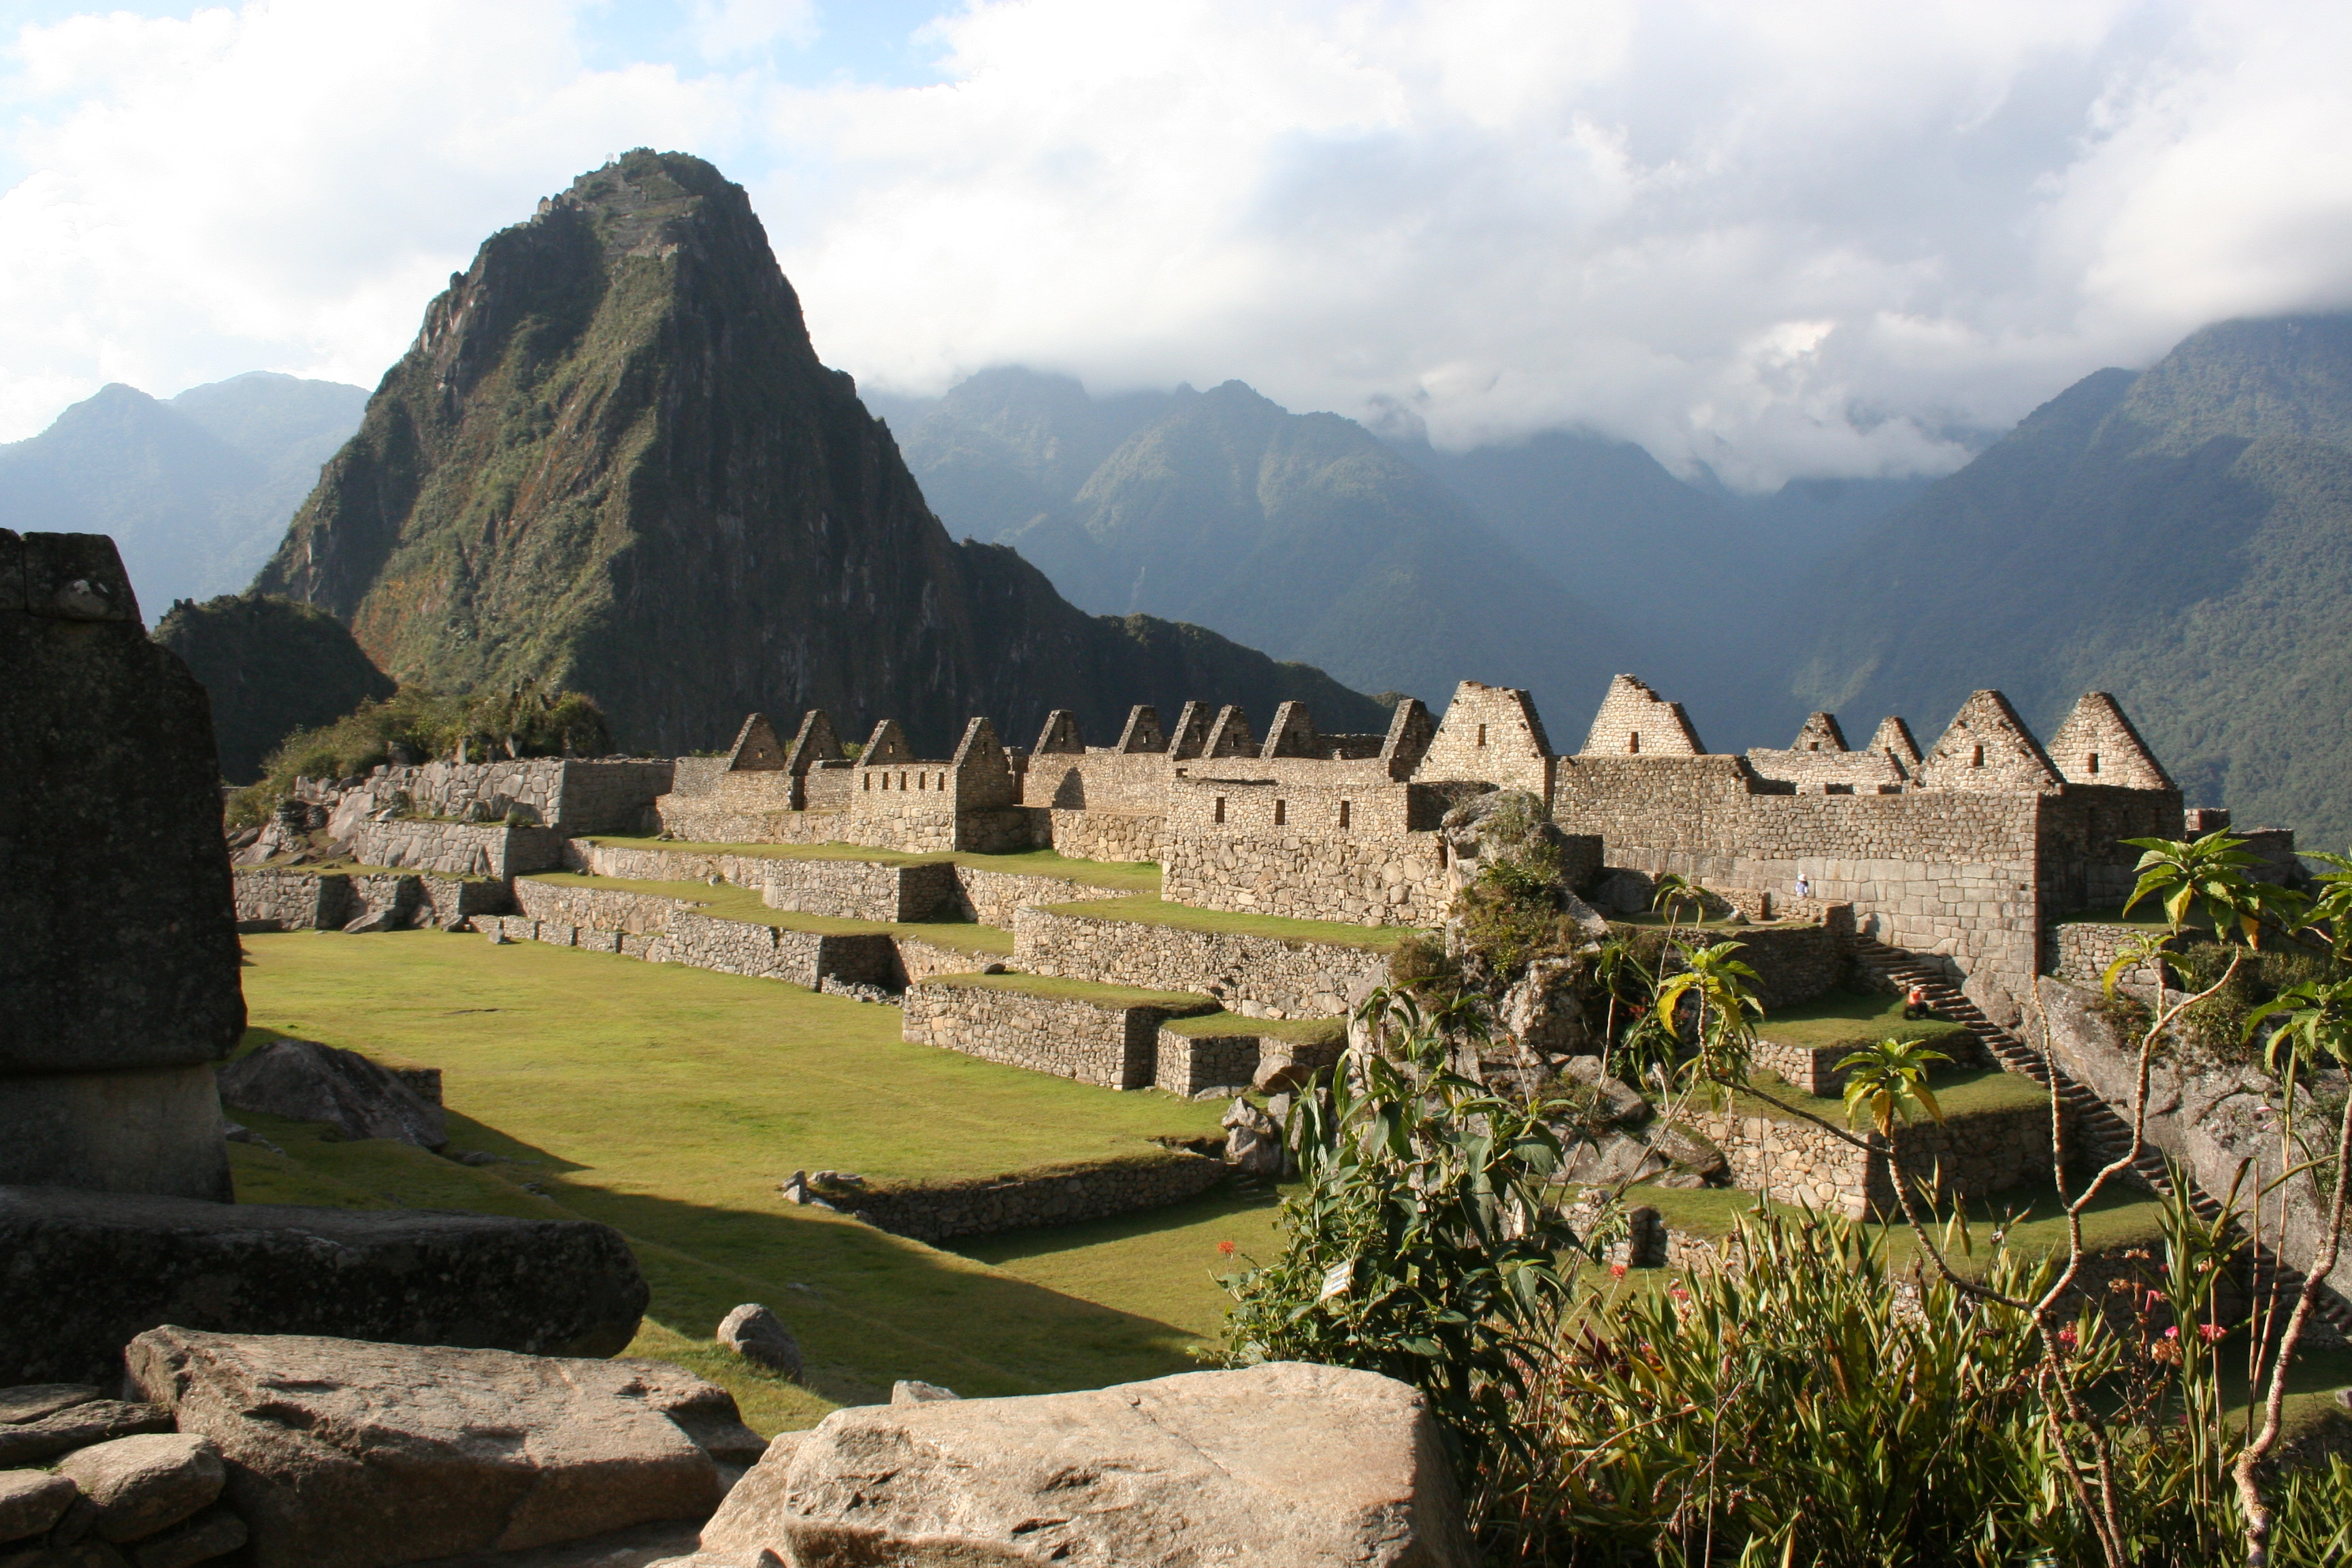 Main Plaza of Machu Picchu